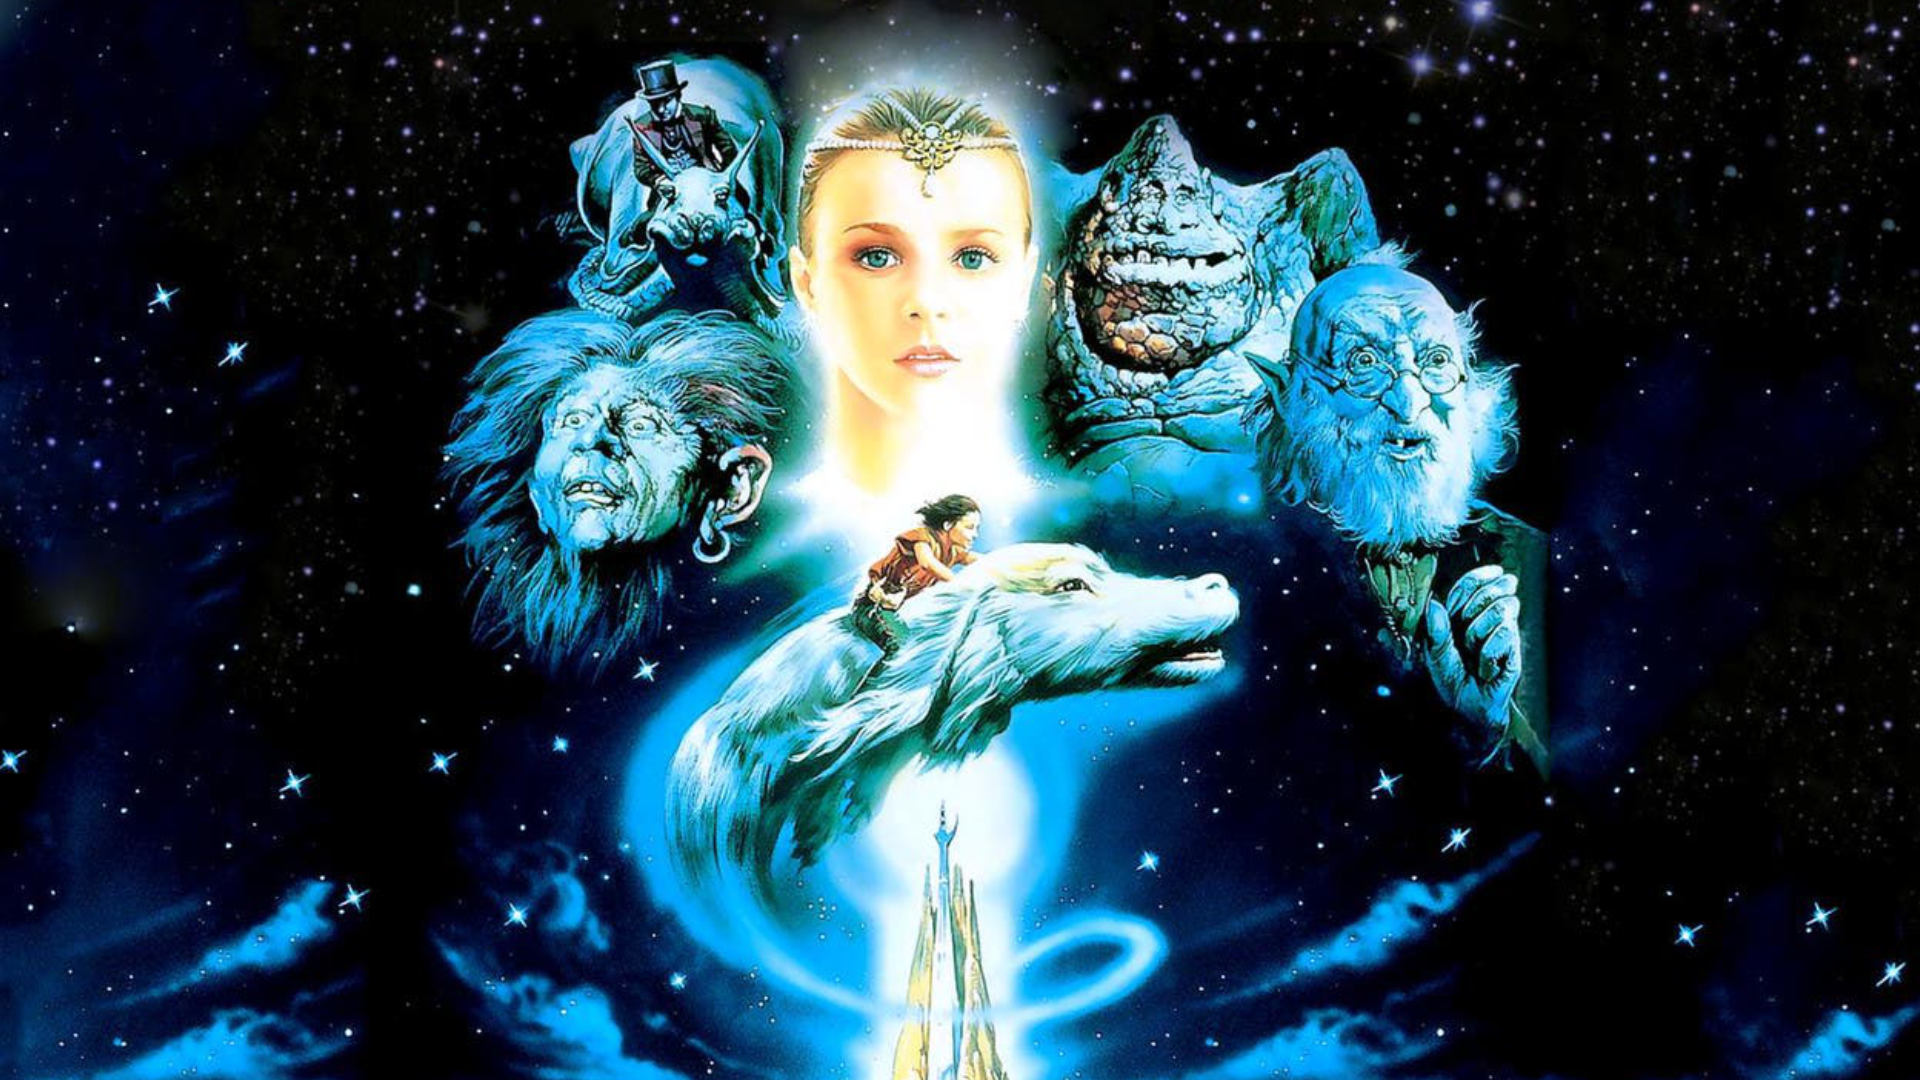 Delorean Musical episodio 10: La historia de 'The Neverending Story'